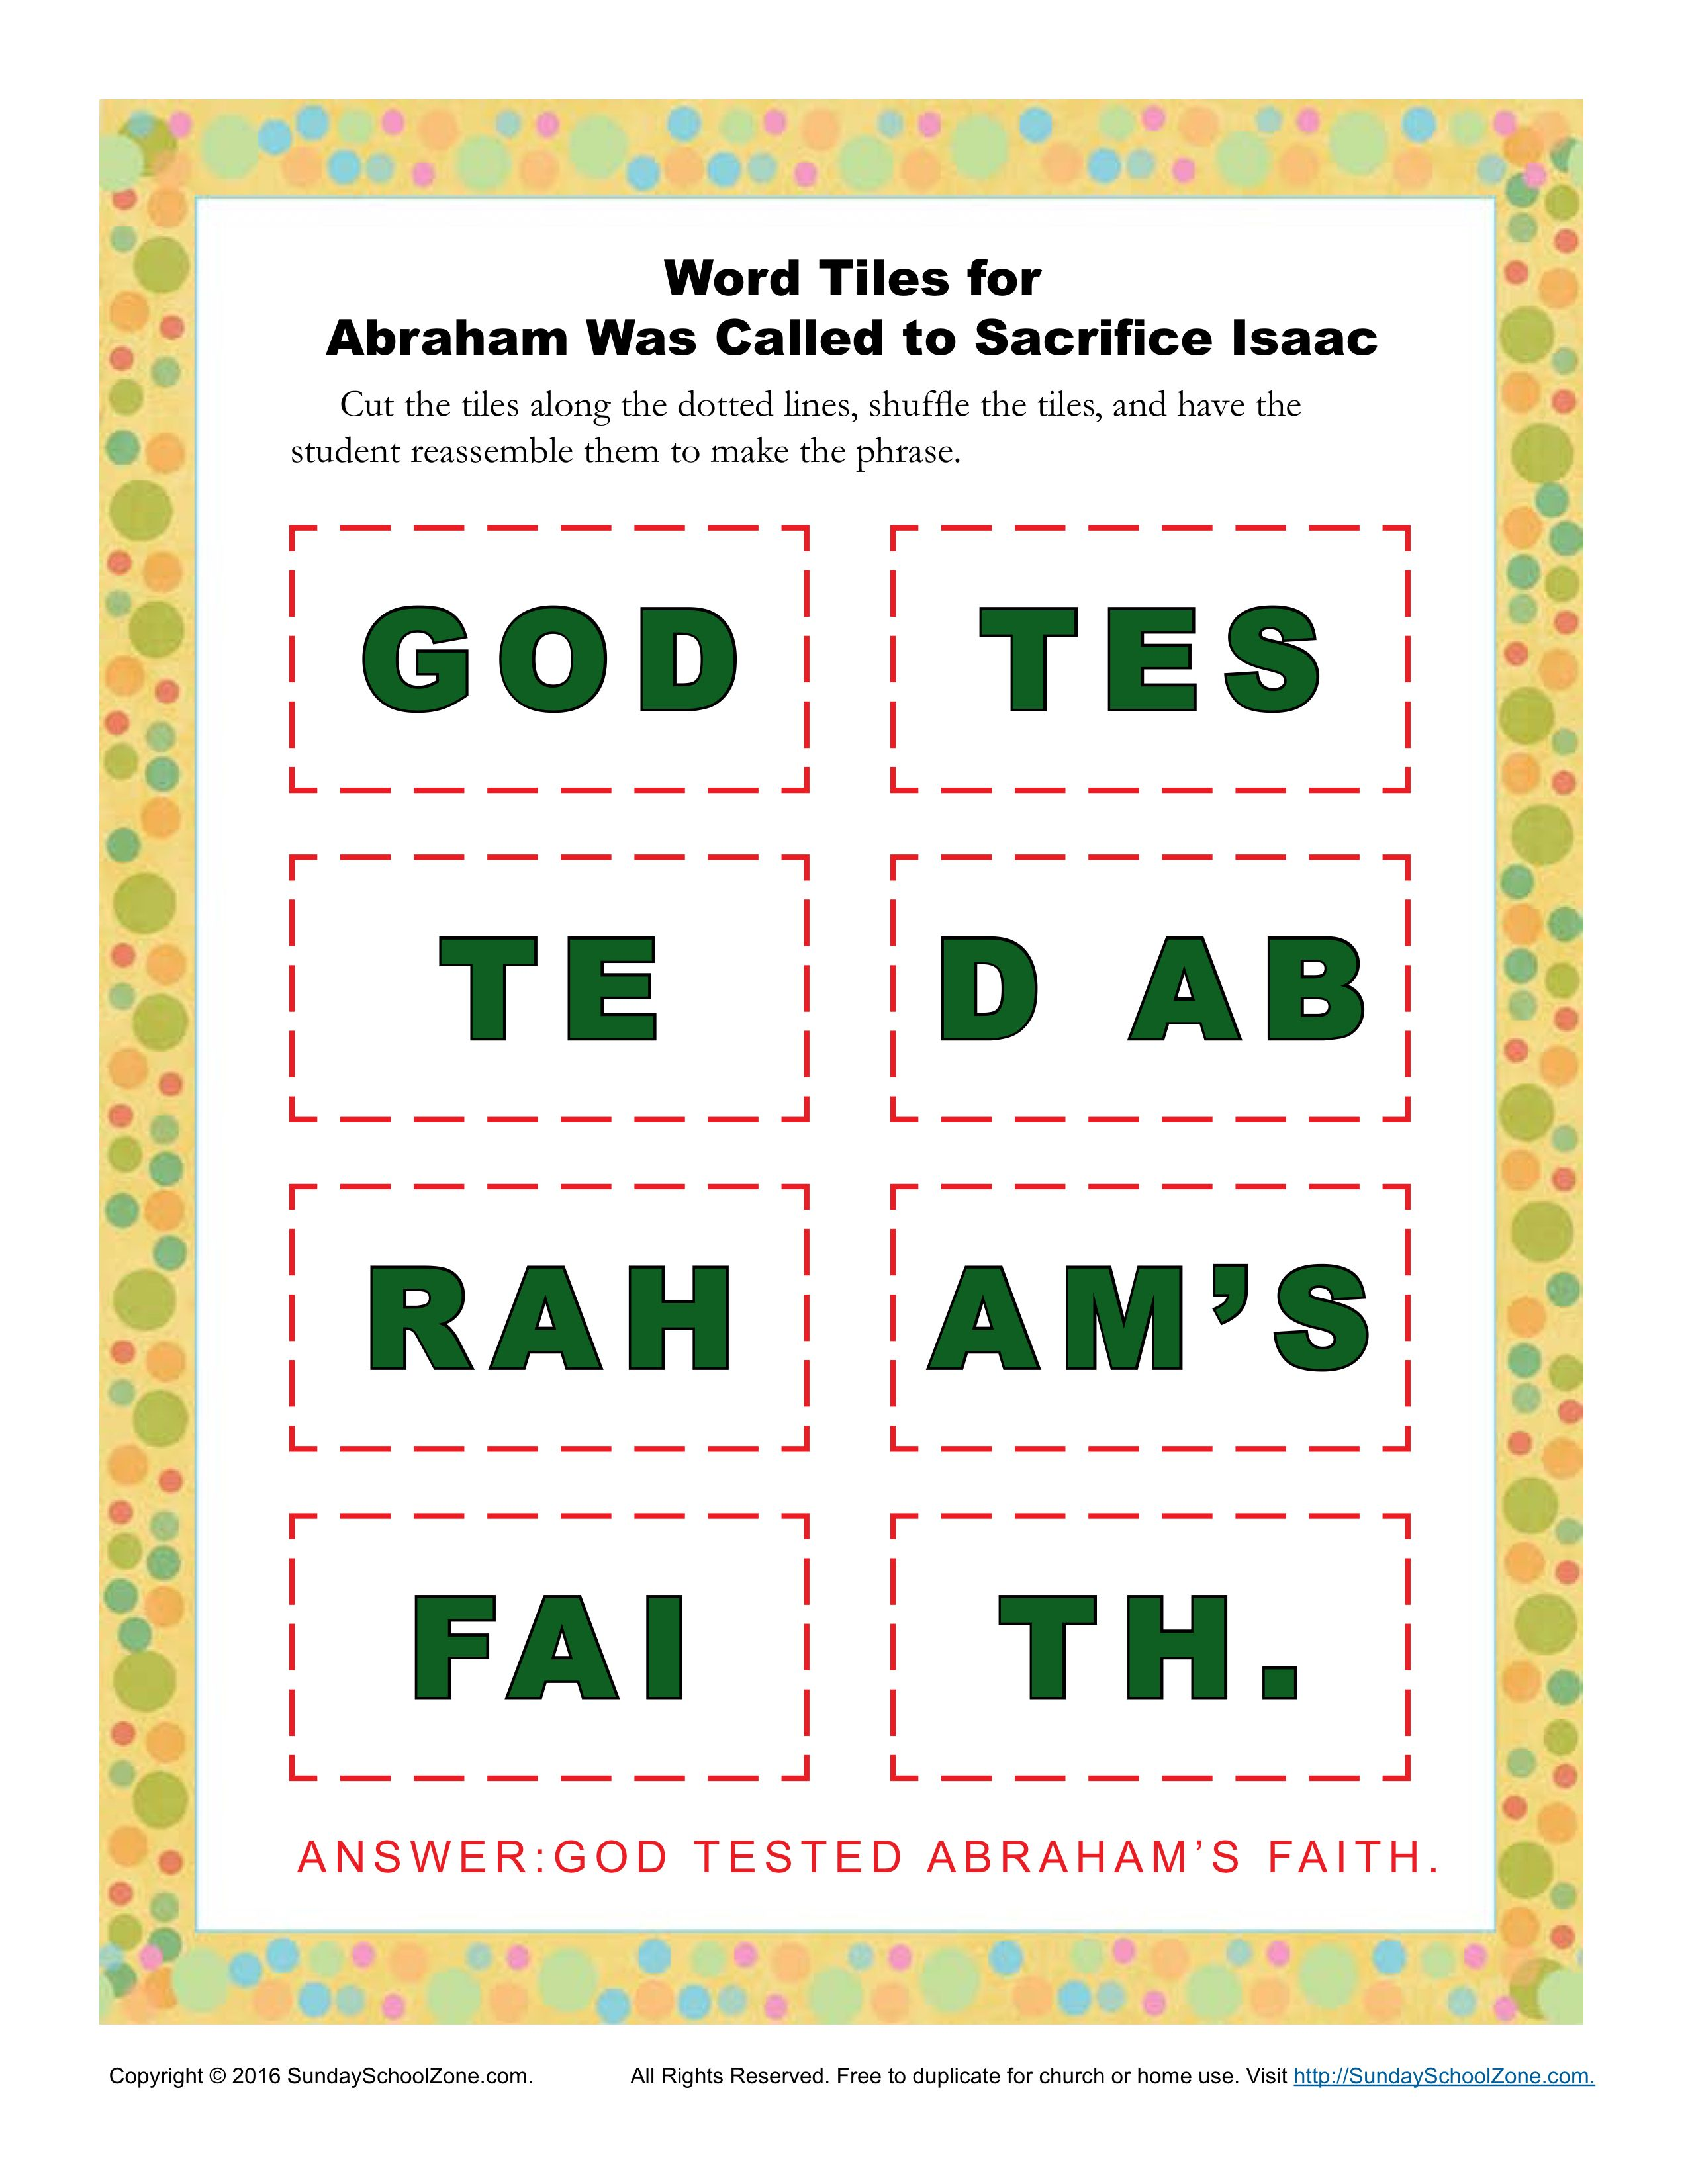 Abraham Was Called To Sacrifice Isaac Word Tiles Activity